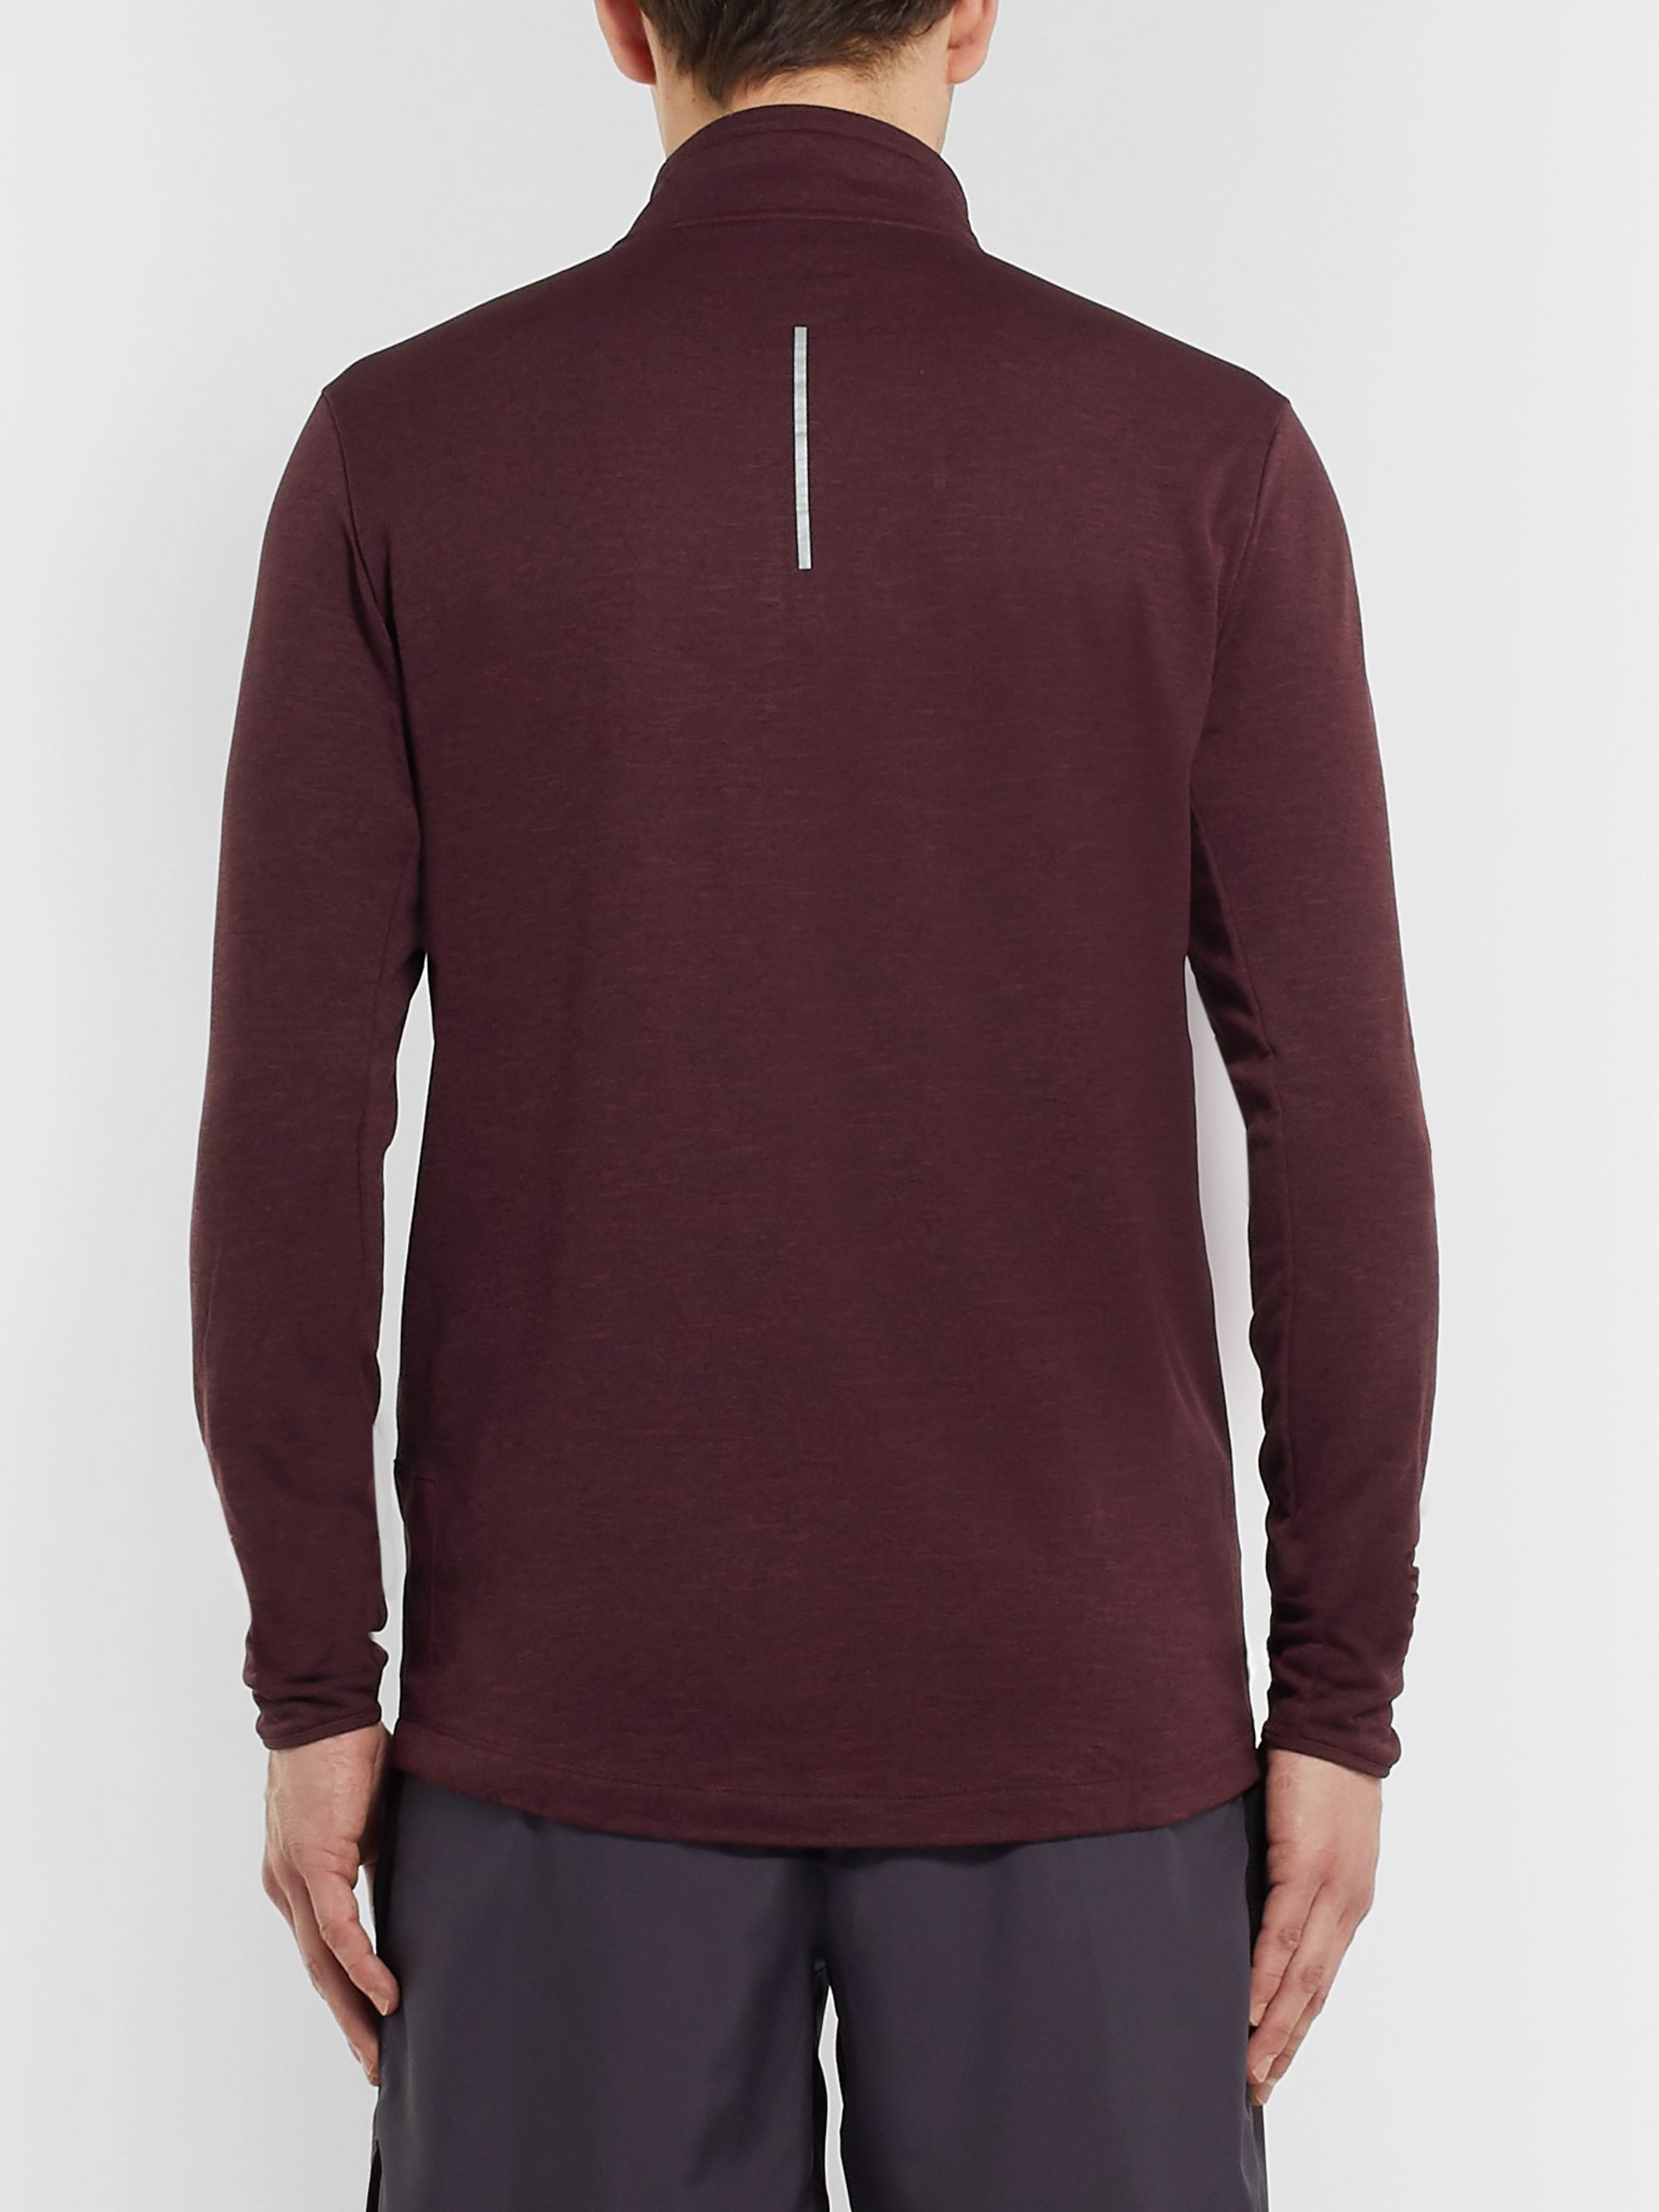 Nike Running Therma-Sphere Element Dri-FIT Half-Zip Top